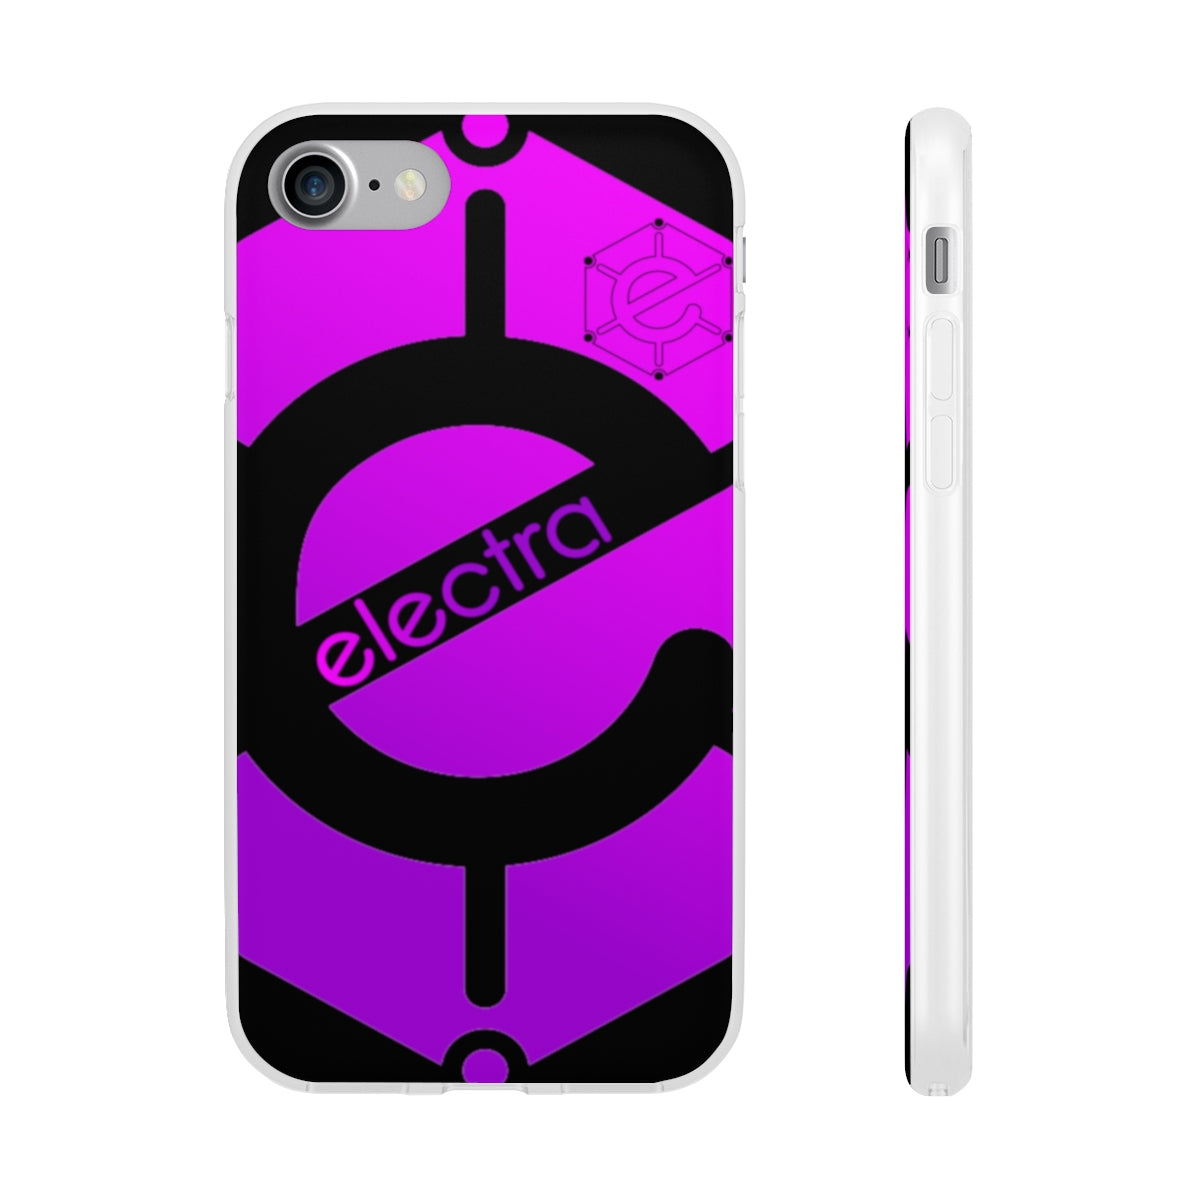 Electra iPhone Case